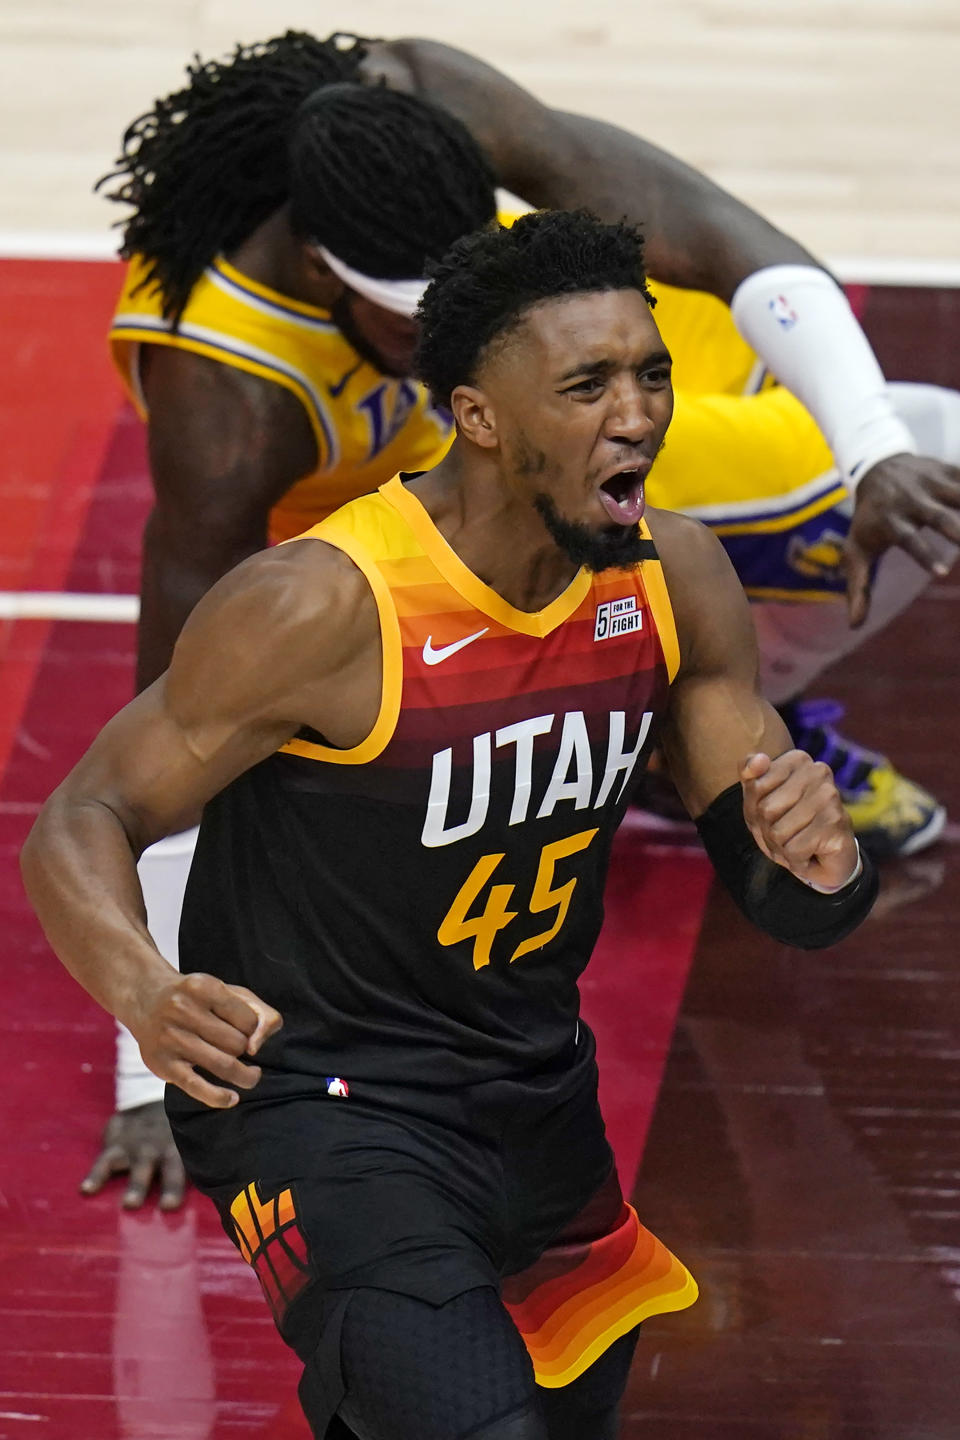 Utah Jazz guard Donovan Mitchell (45) reacts after blocking a shot by Los Angeles Lakers center Montrezl Harrell, rear, during the first half of an NBA basketball game Wednesday, Feb. 24, 2021, in Salt Lake City. (AP Photo/Rick Bowmer)